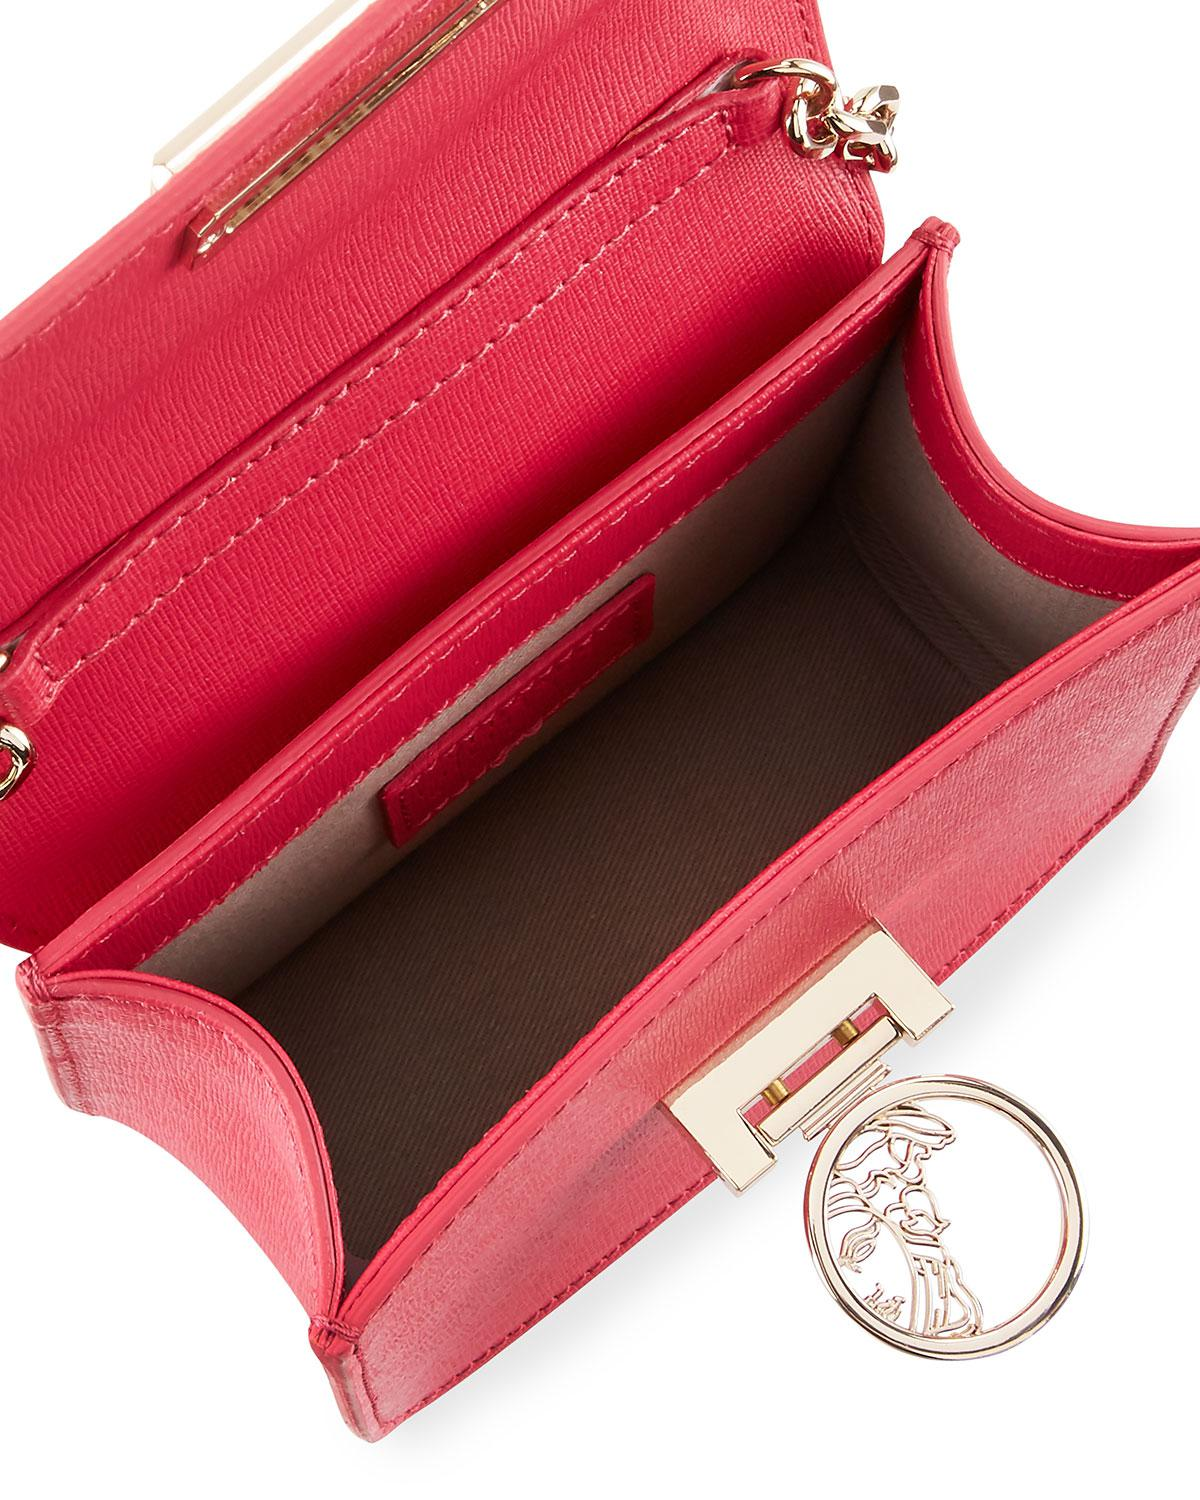 6b3905e8a1d9 Lyst - Versace Small Saffiano Leather Crossbody Bag With Medusa in Pink